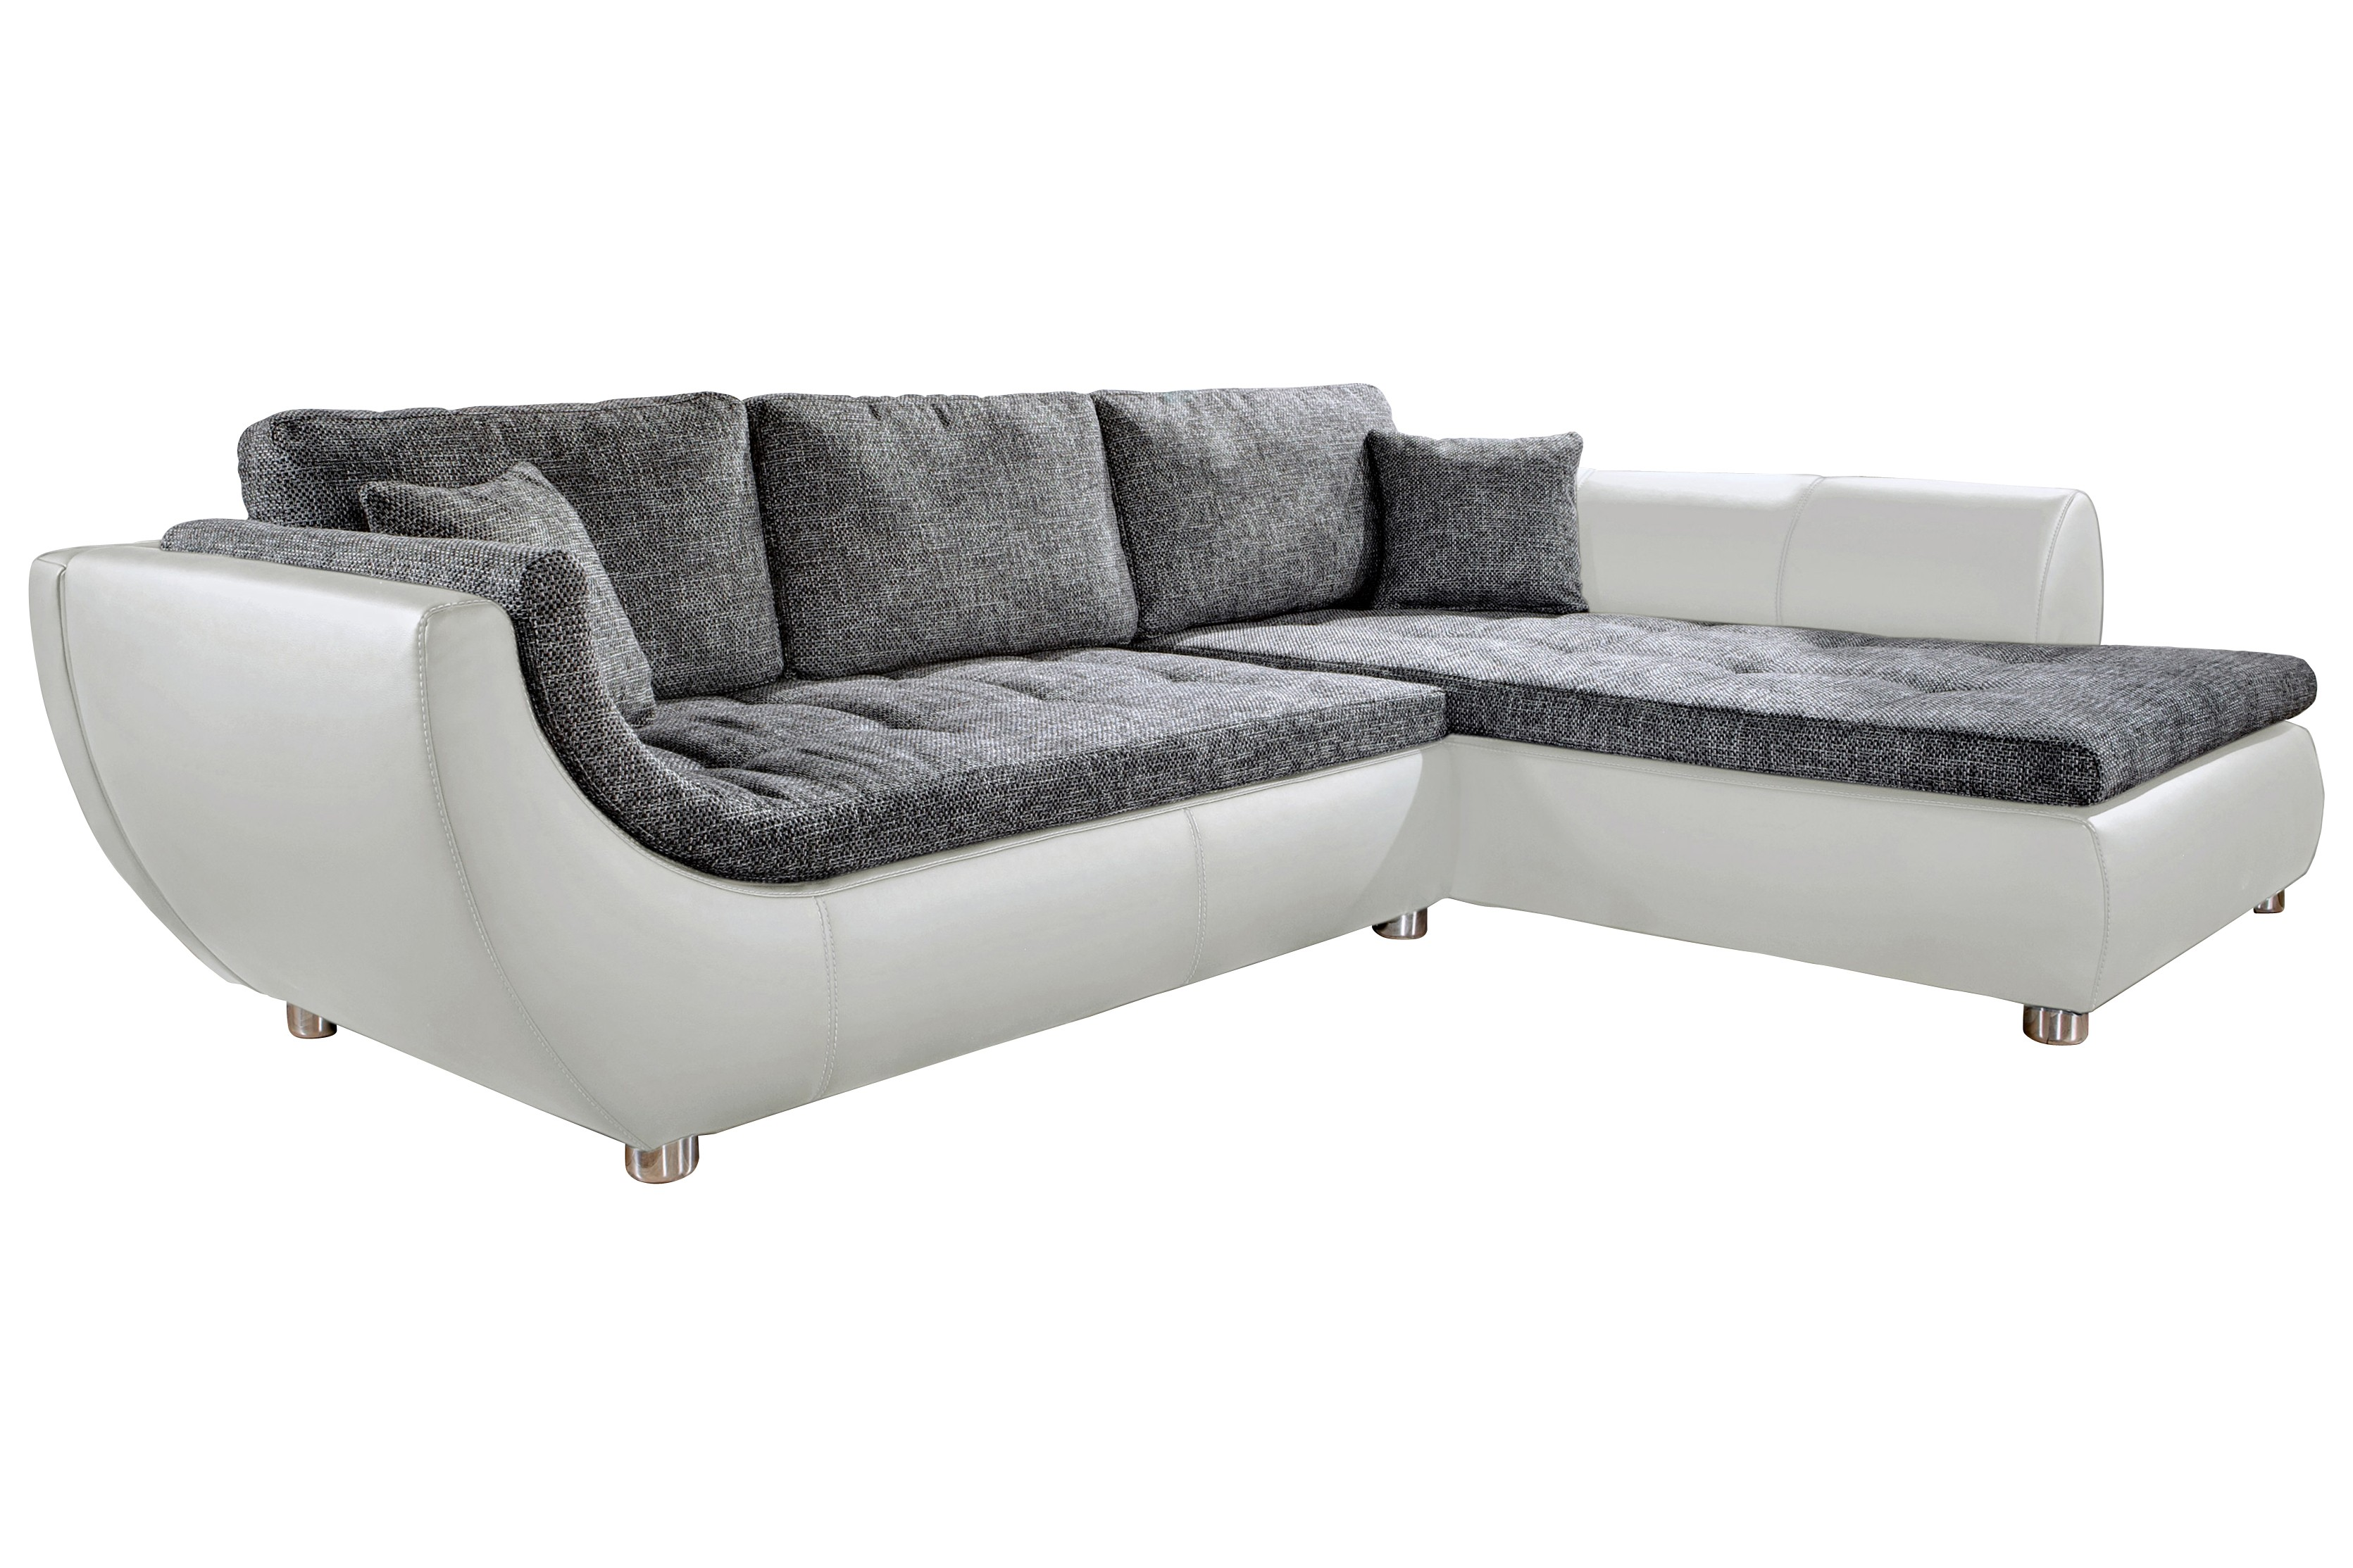 3 Ecksofa Ecksofa Samples In World